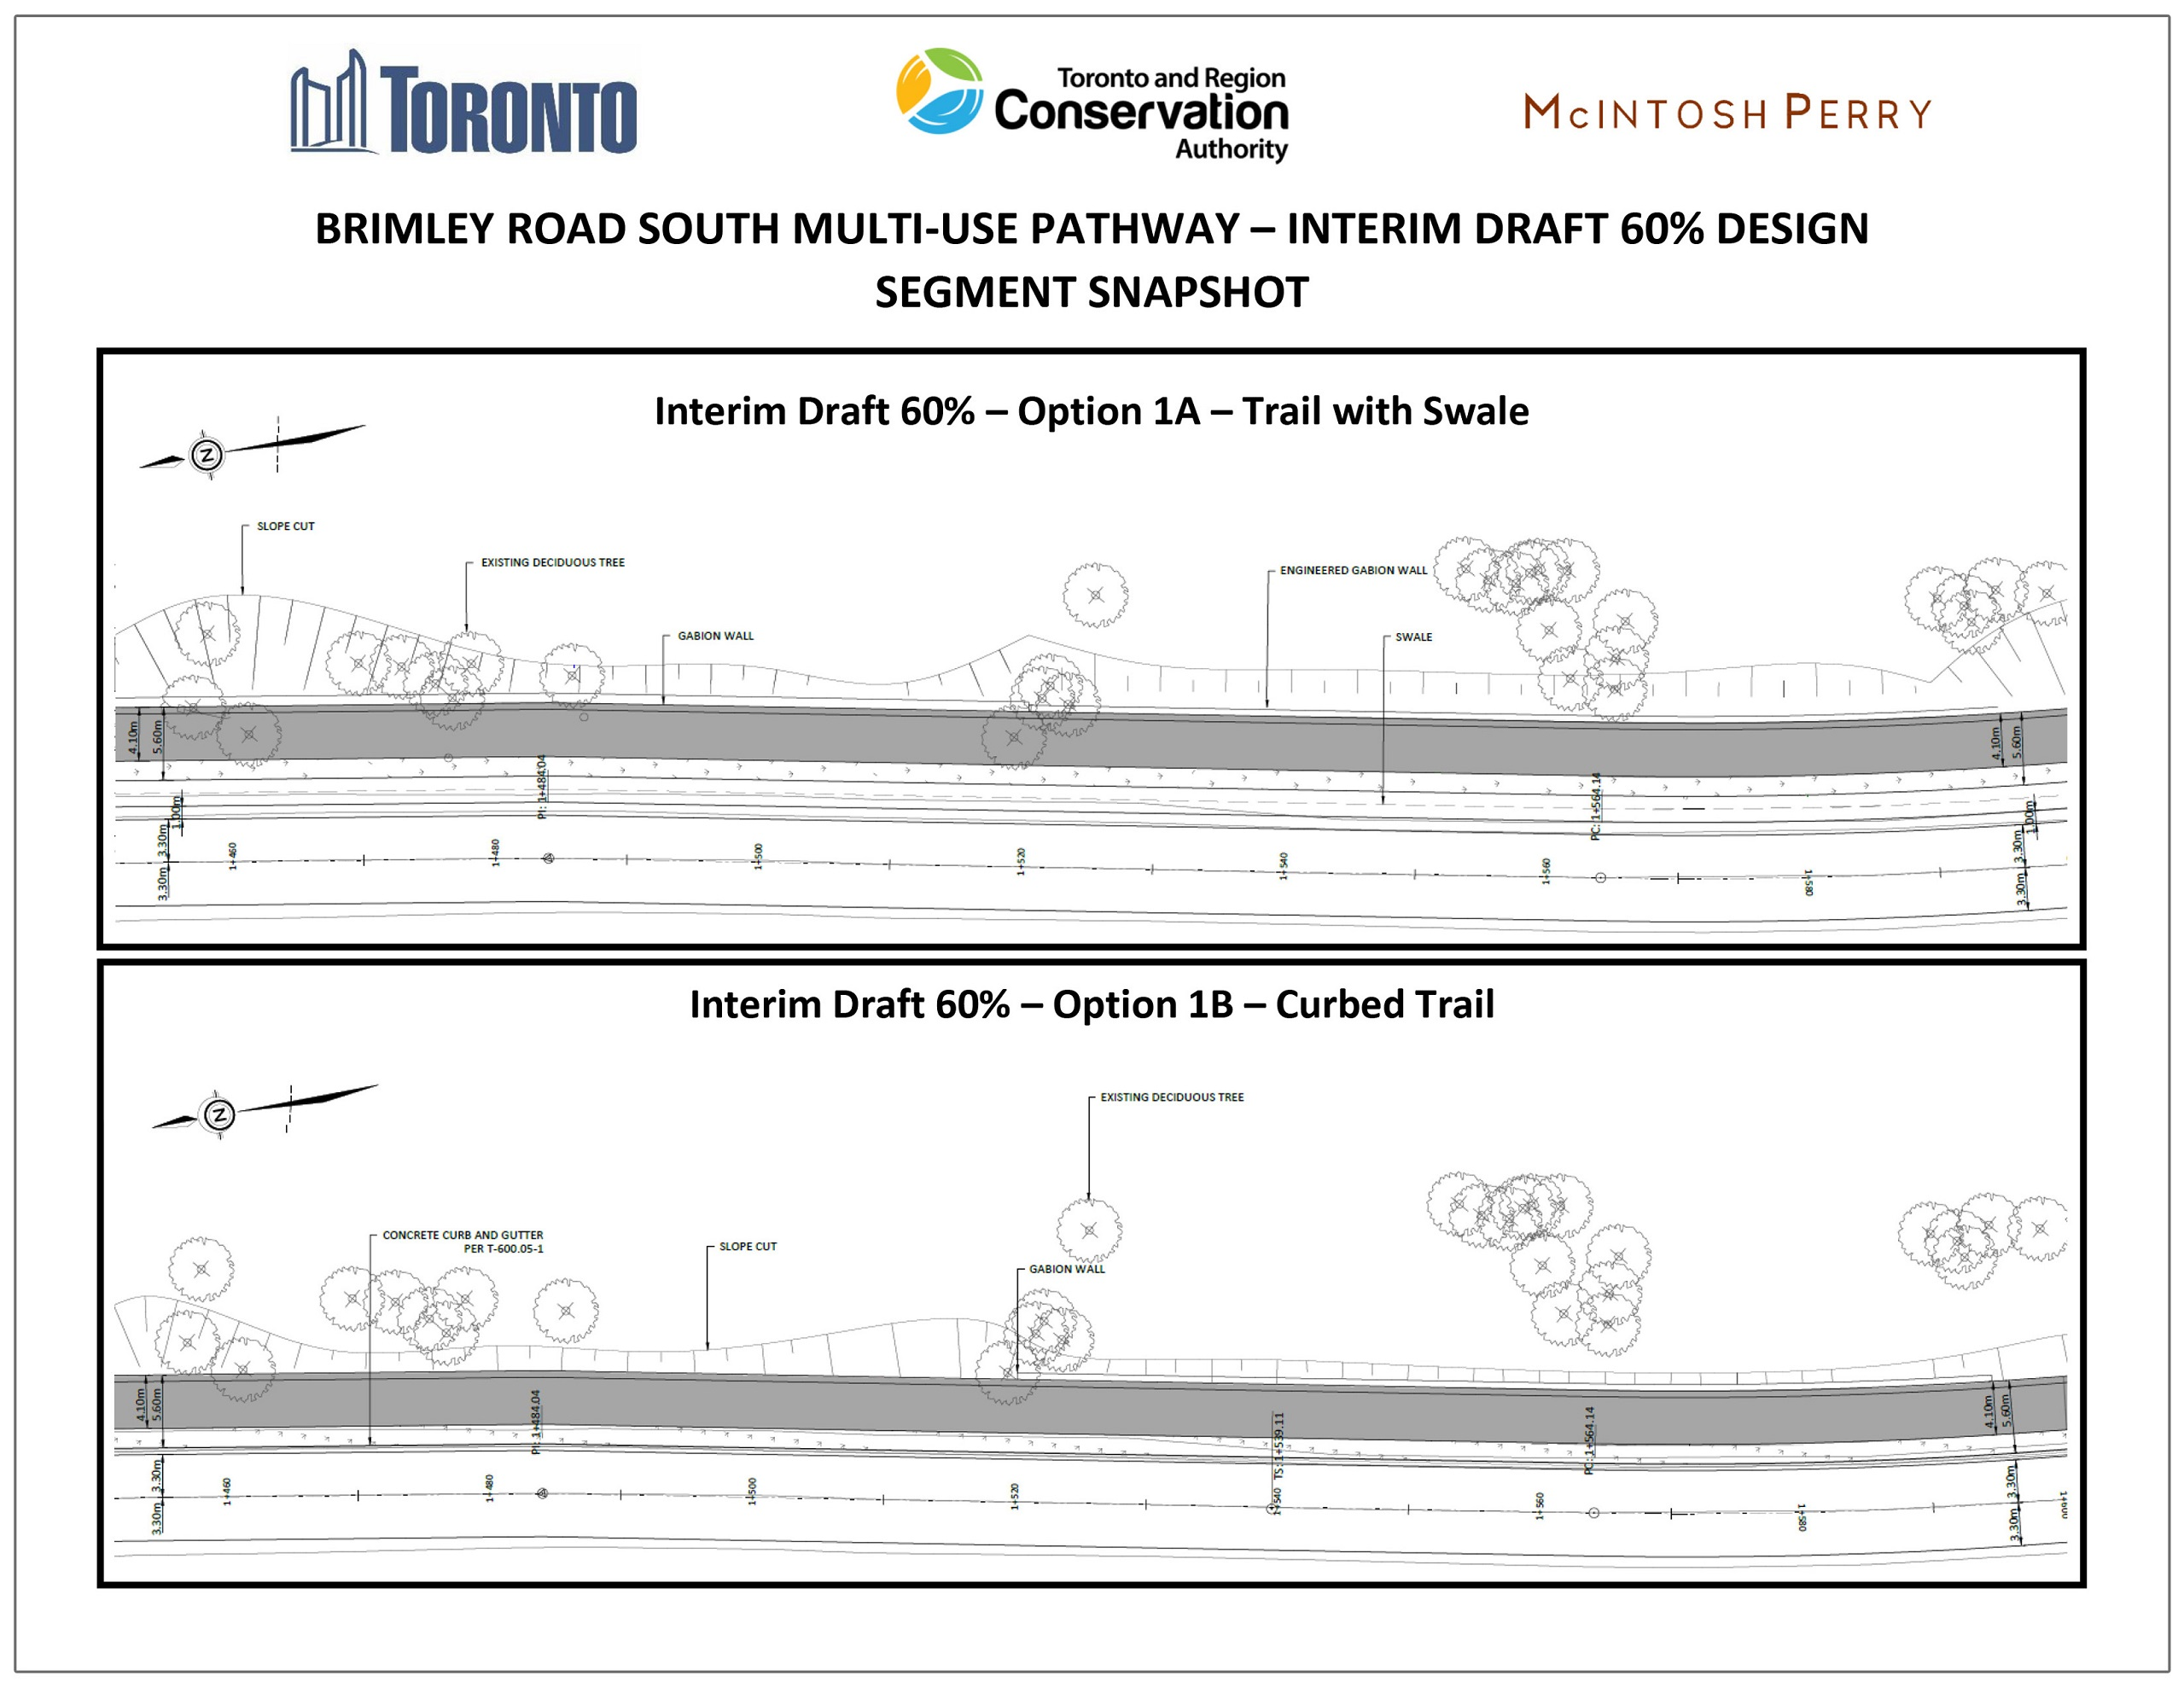 comparison of sub-options for the Brimley Road South Multi-Use Trail